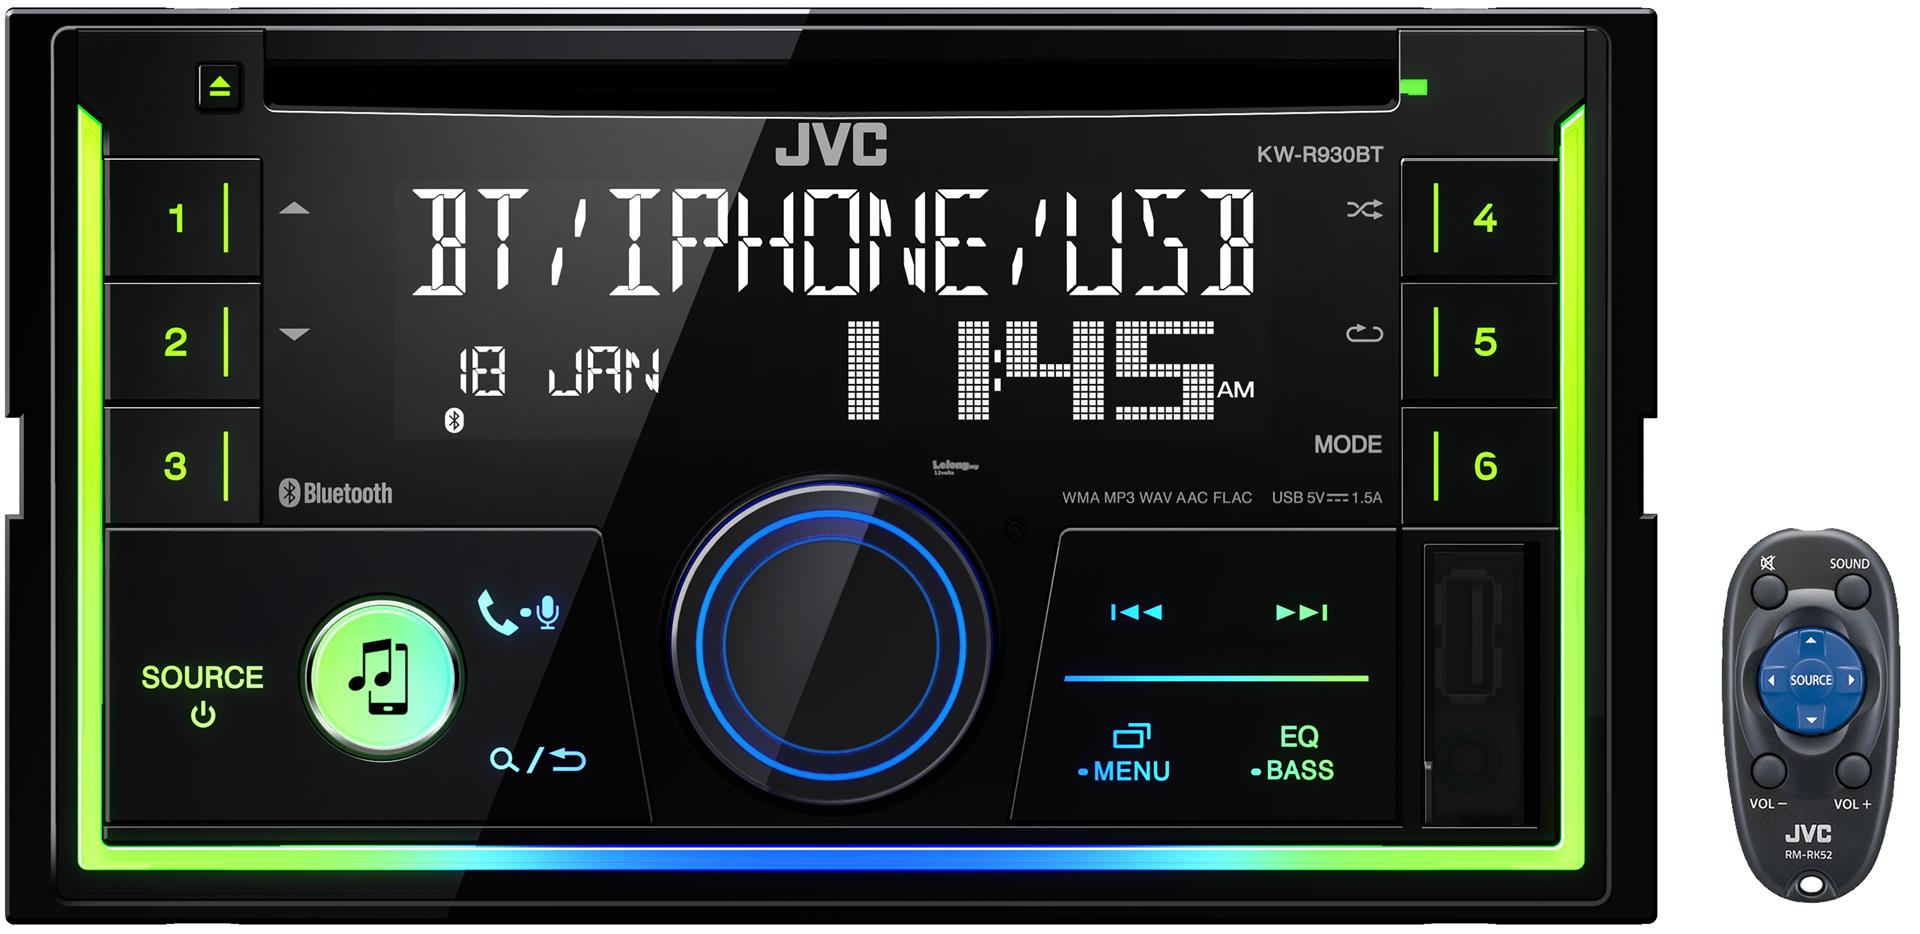 JVC KW-R930BT Double DIN CD Front USB Aux Car Stereo Receiver